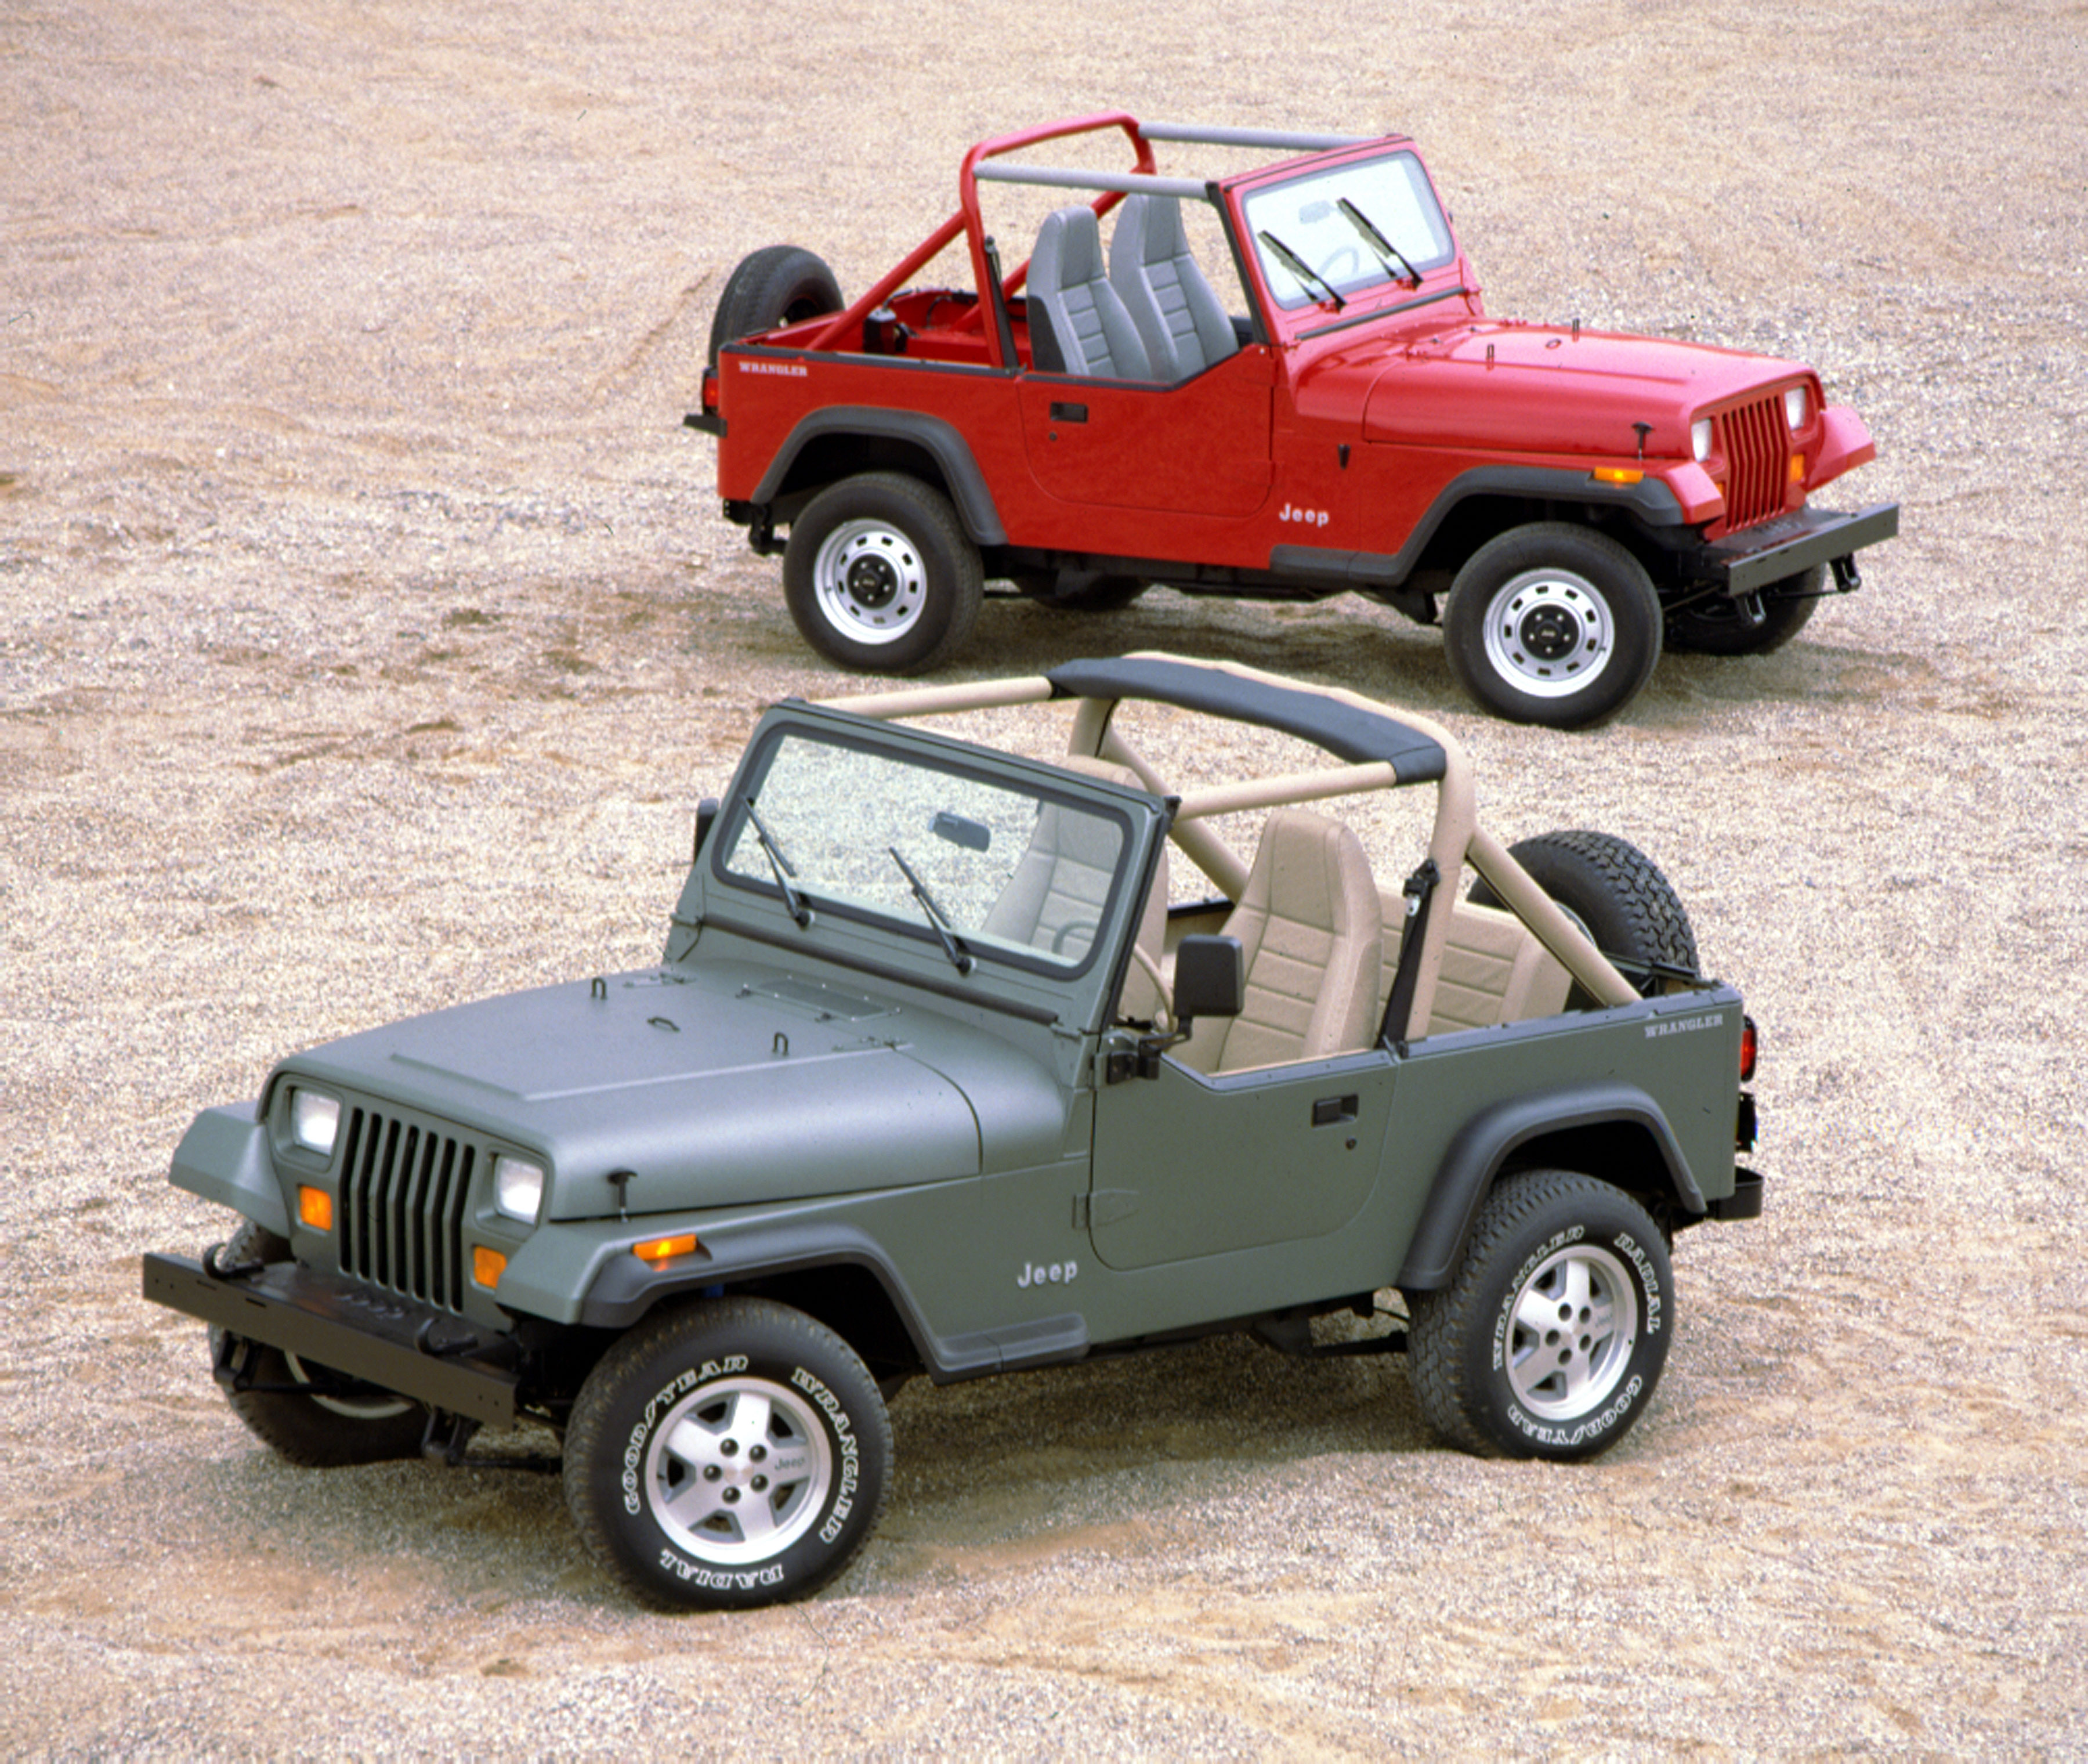 Why You Should Buy A Jeep Wrangler Right Now